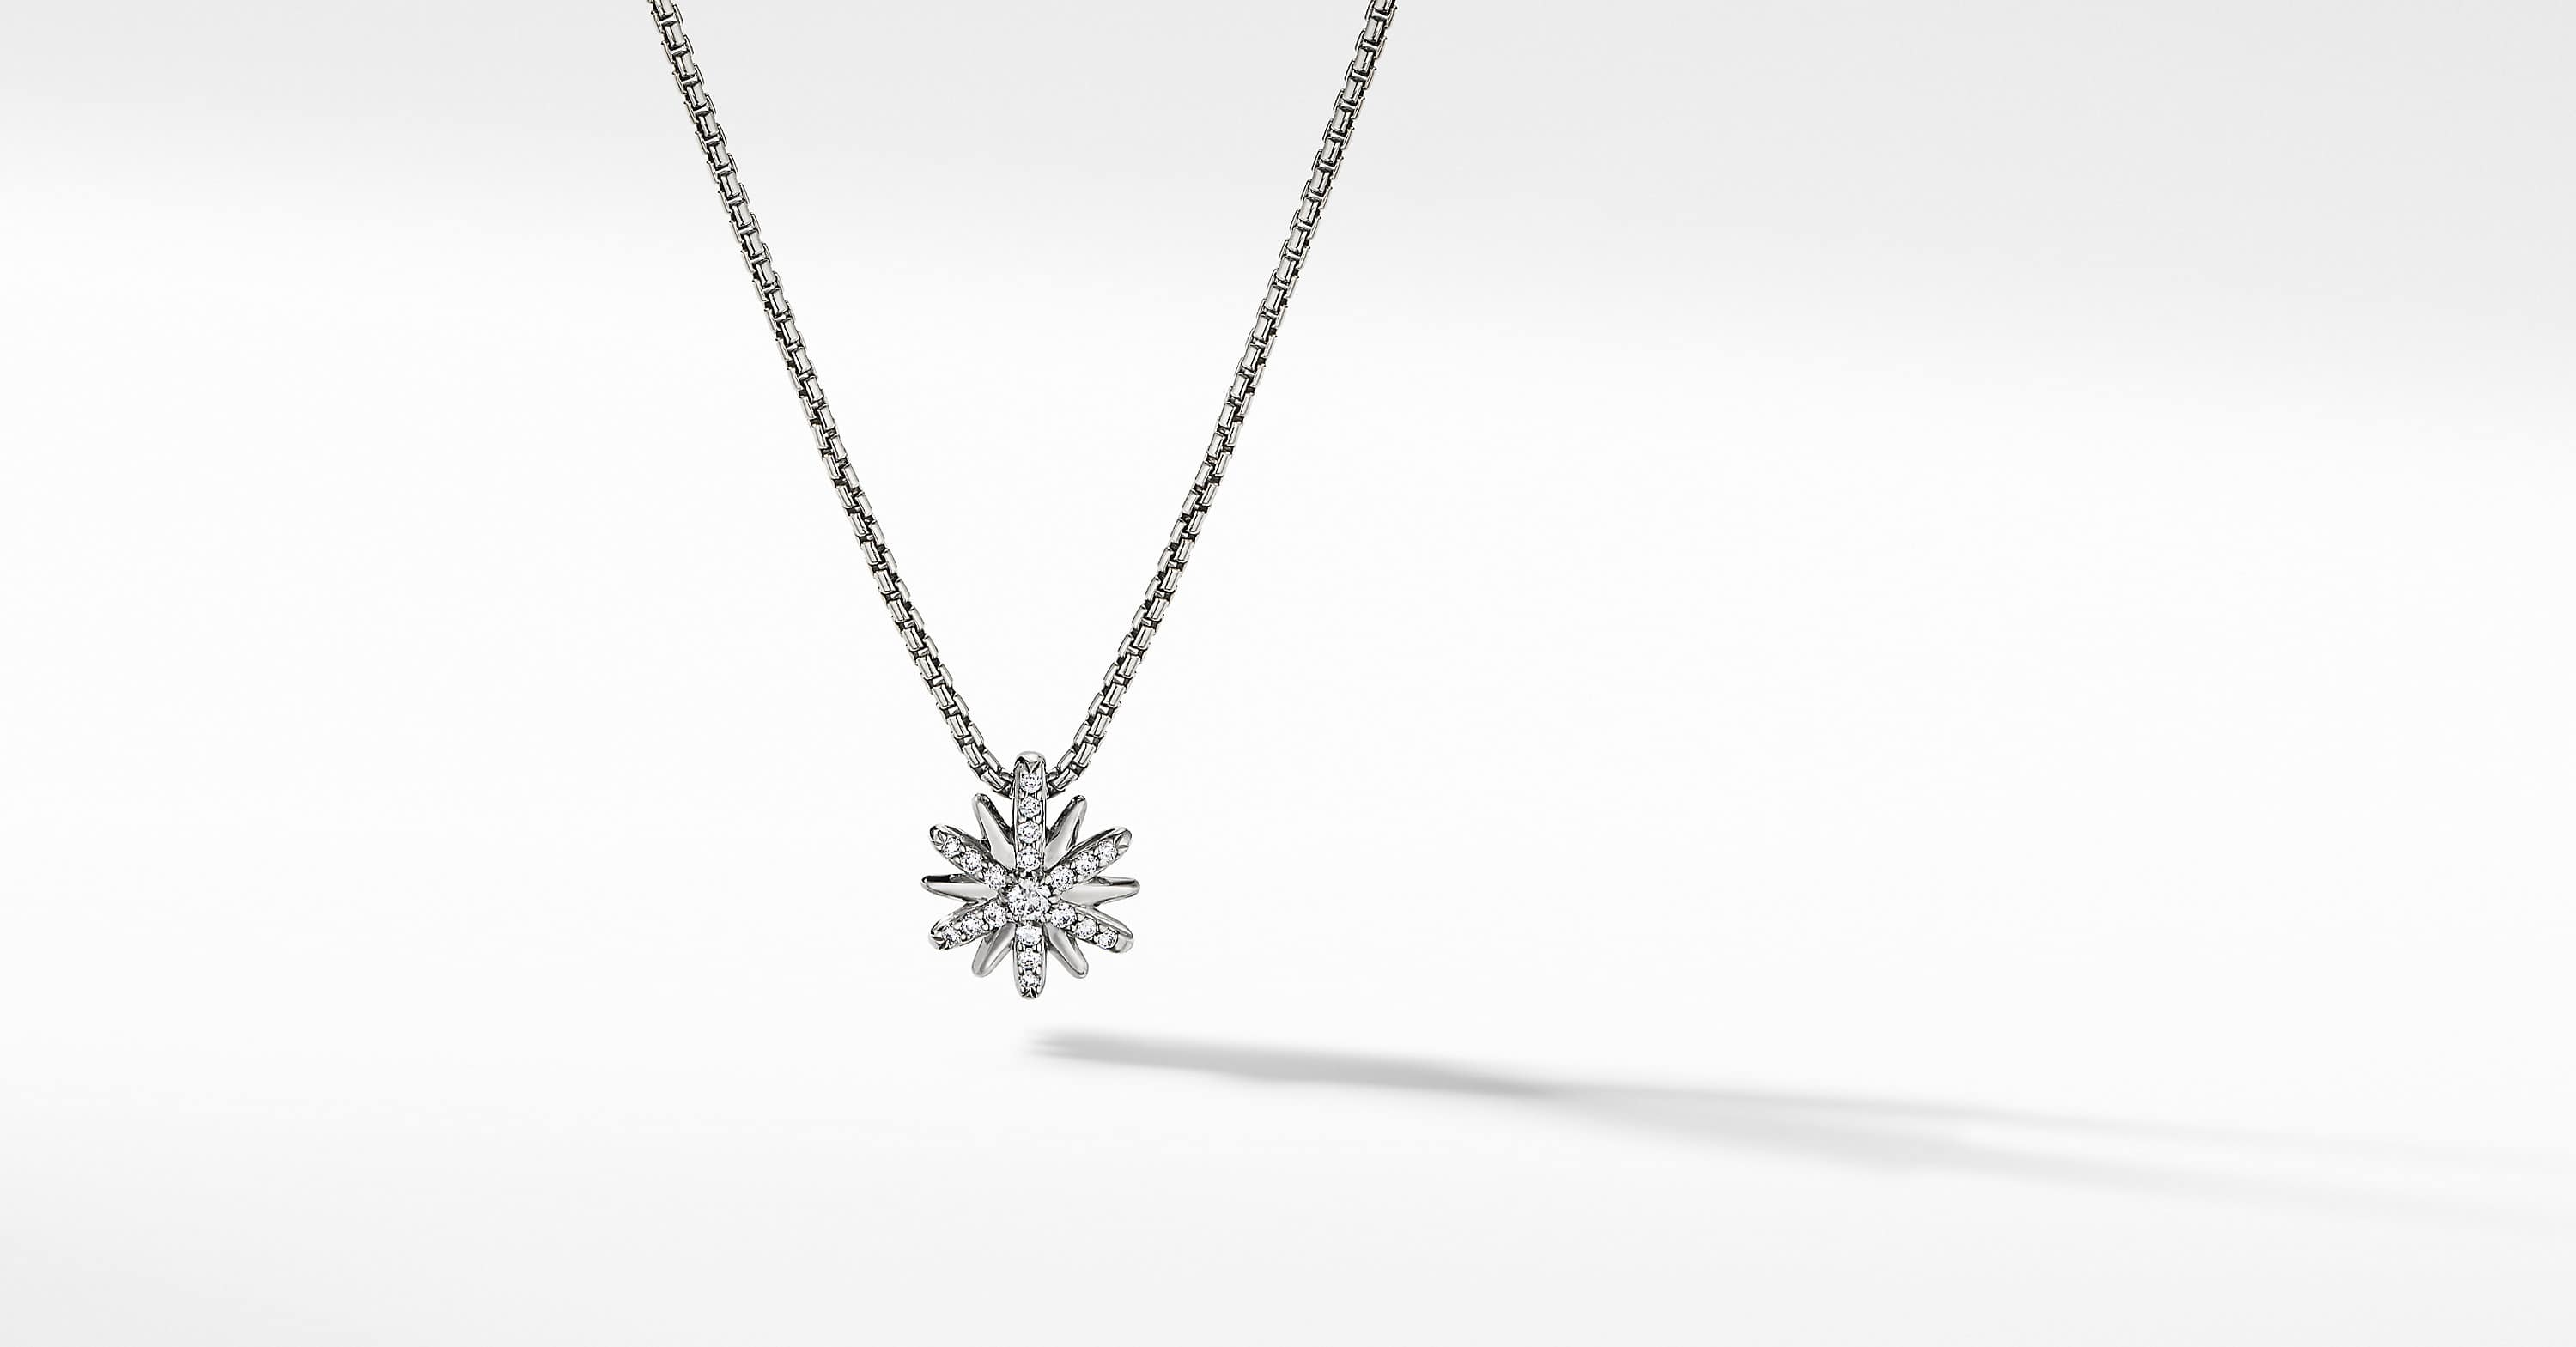 Petite Starburst Station Necklace with Diamonds, 10mm